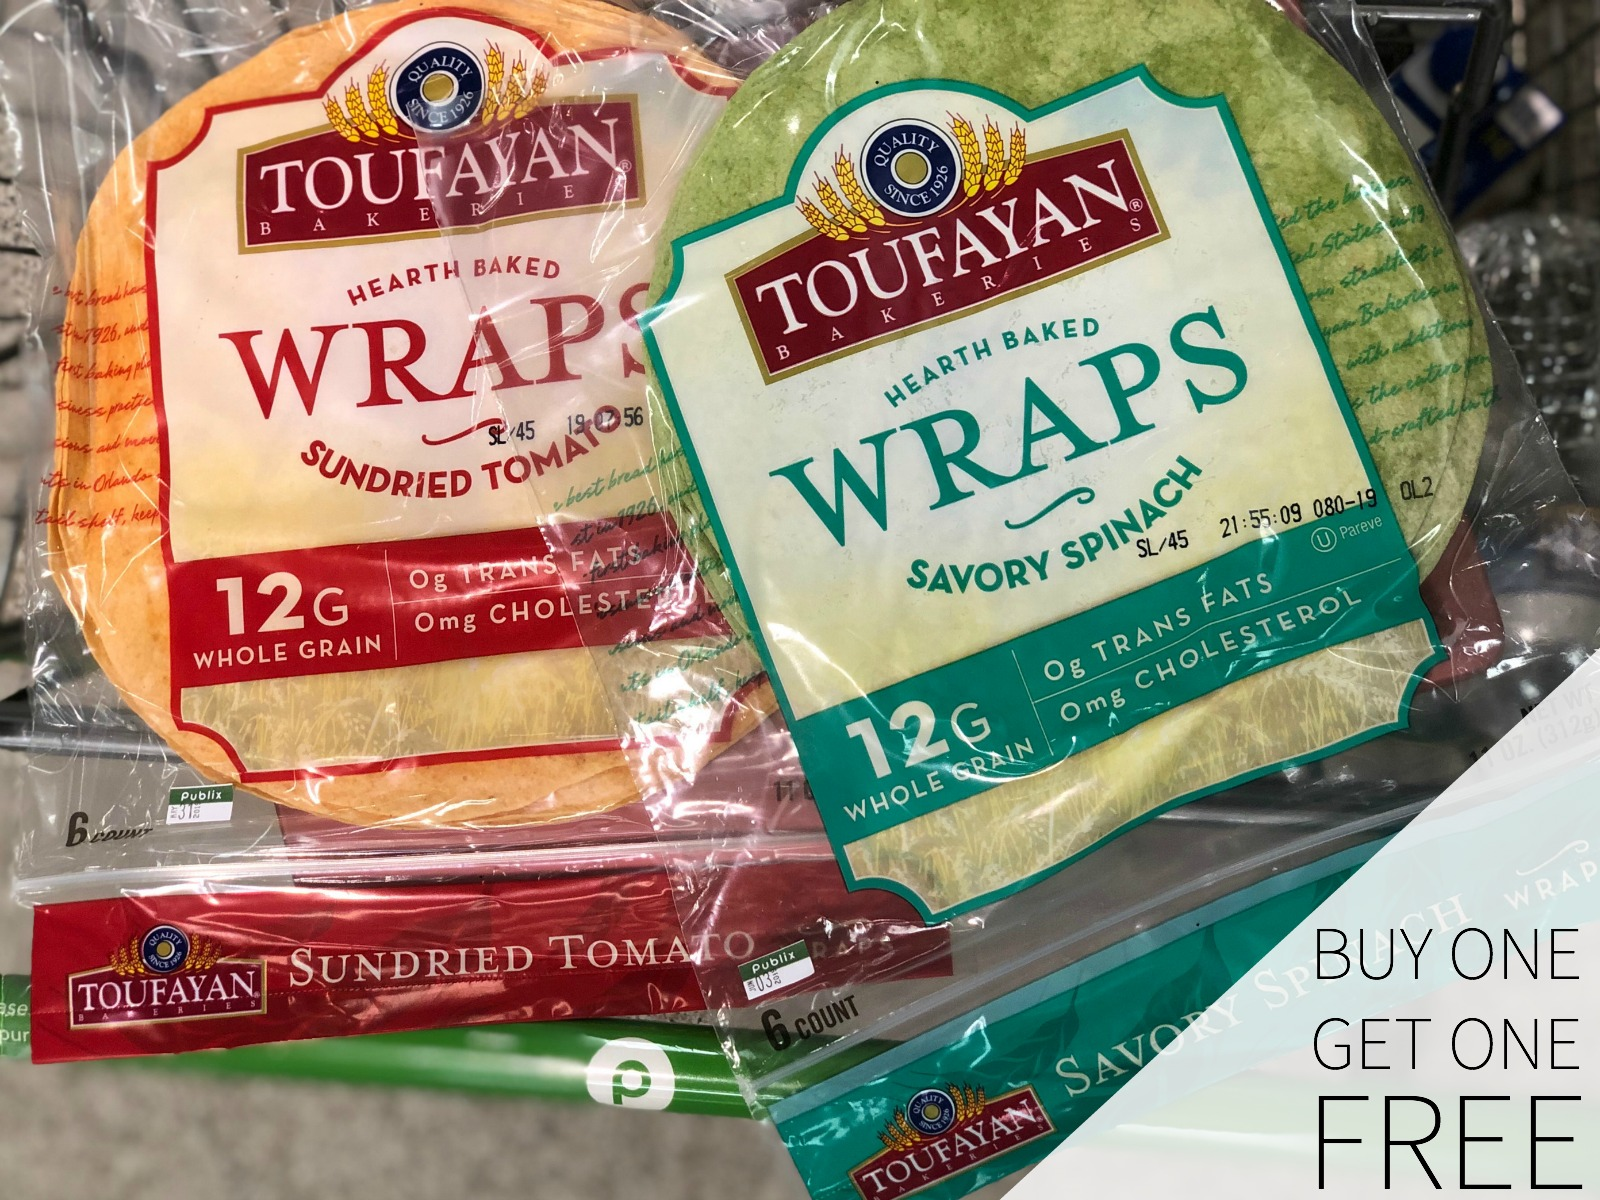 Stock Up On Toufayan Wraps At Publix - Buy One, Get One FREE! on I Heart Publix